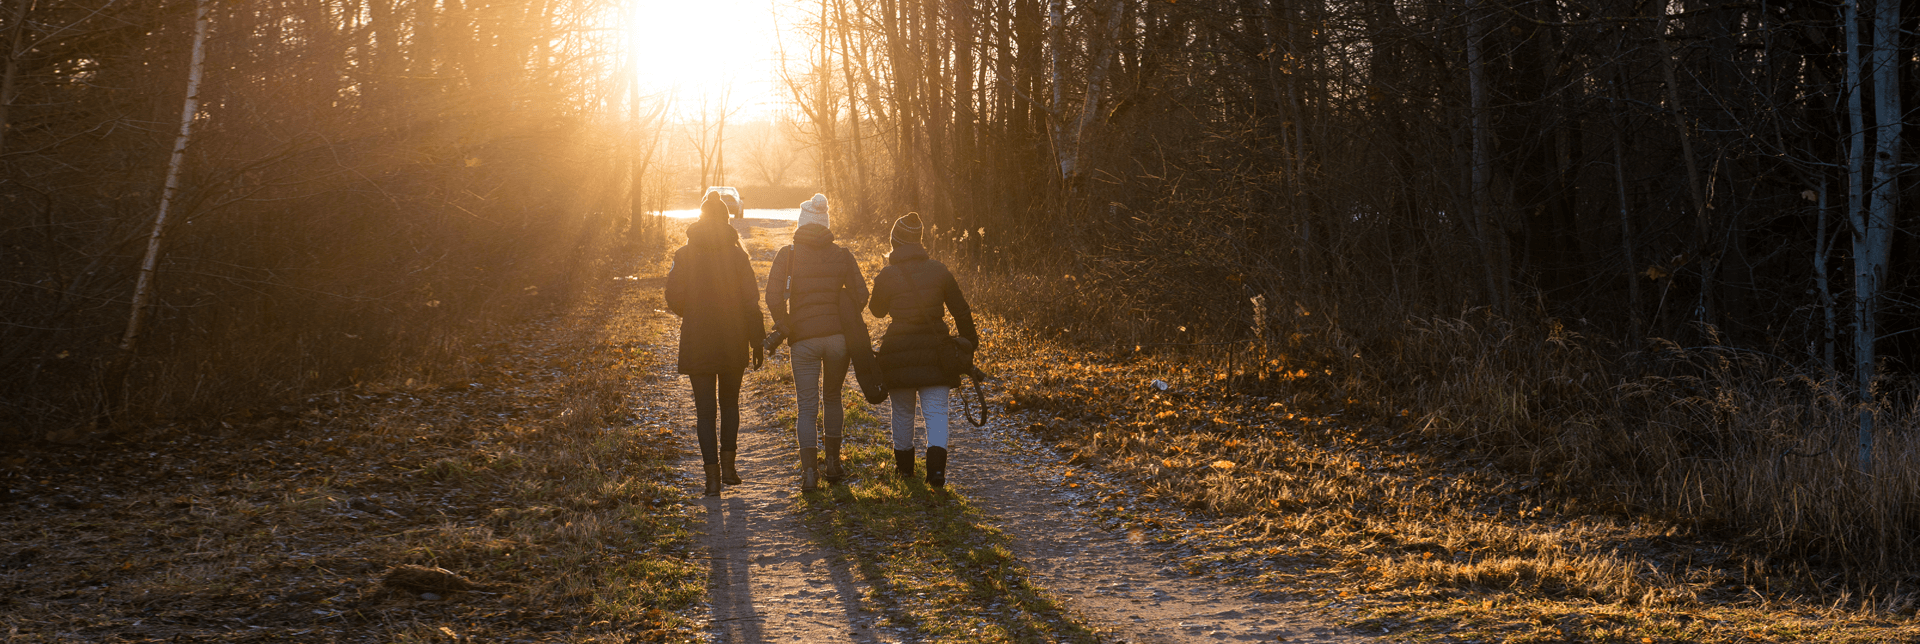 Walking outdoors with family